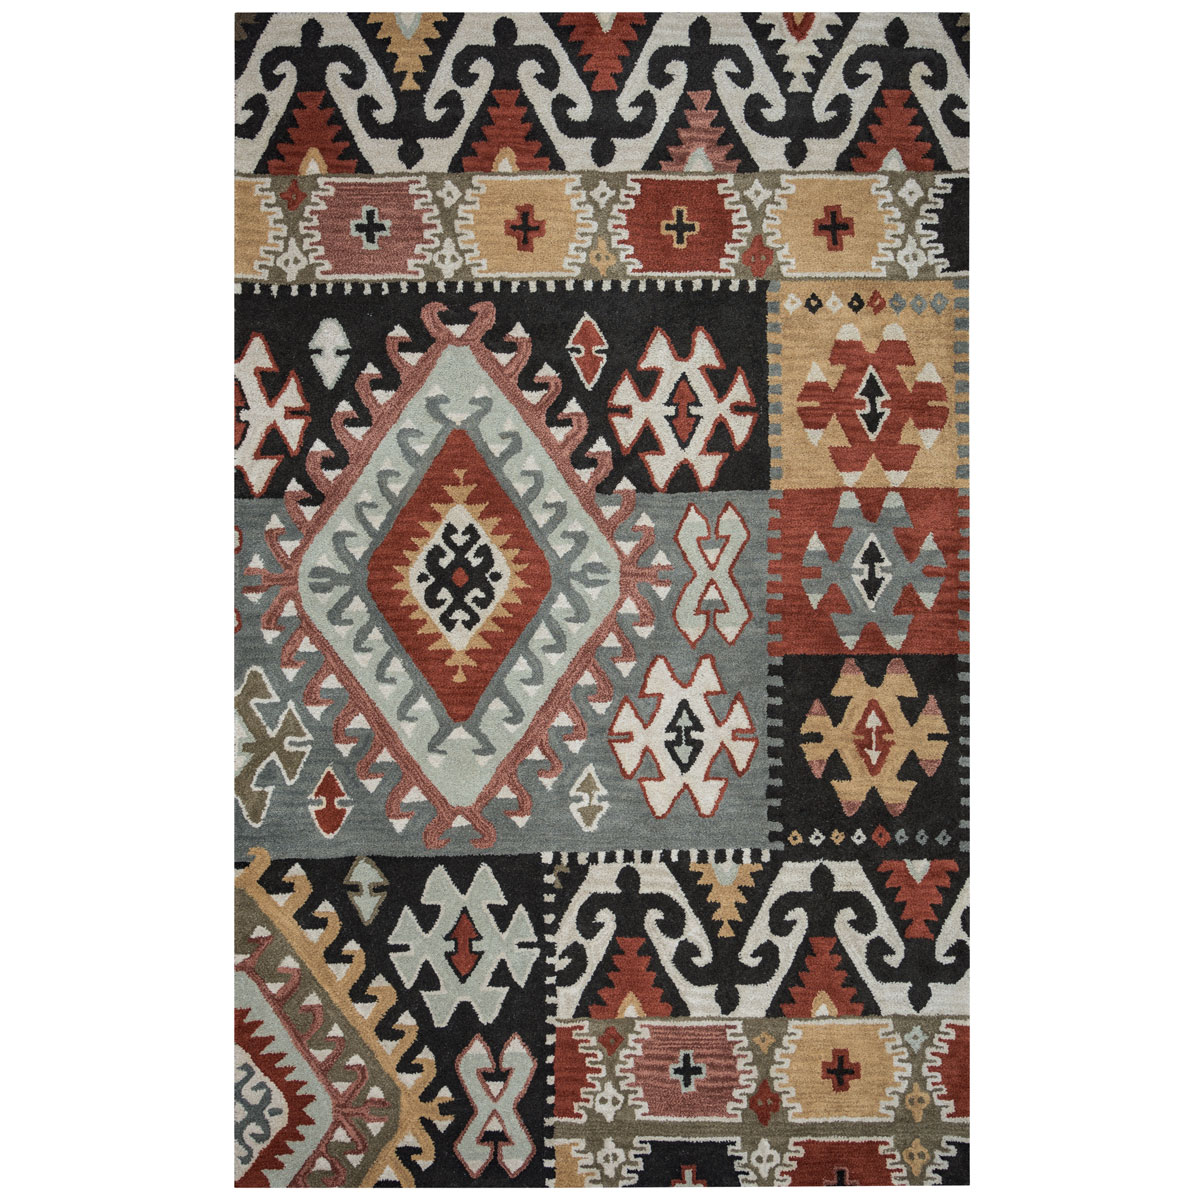 Southwest Geometric Patches Rug - 8 x 10